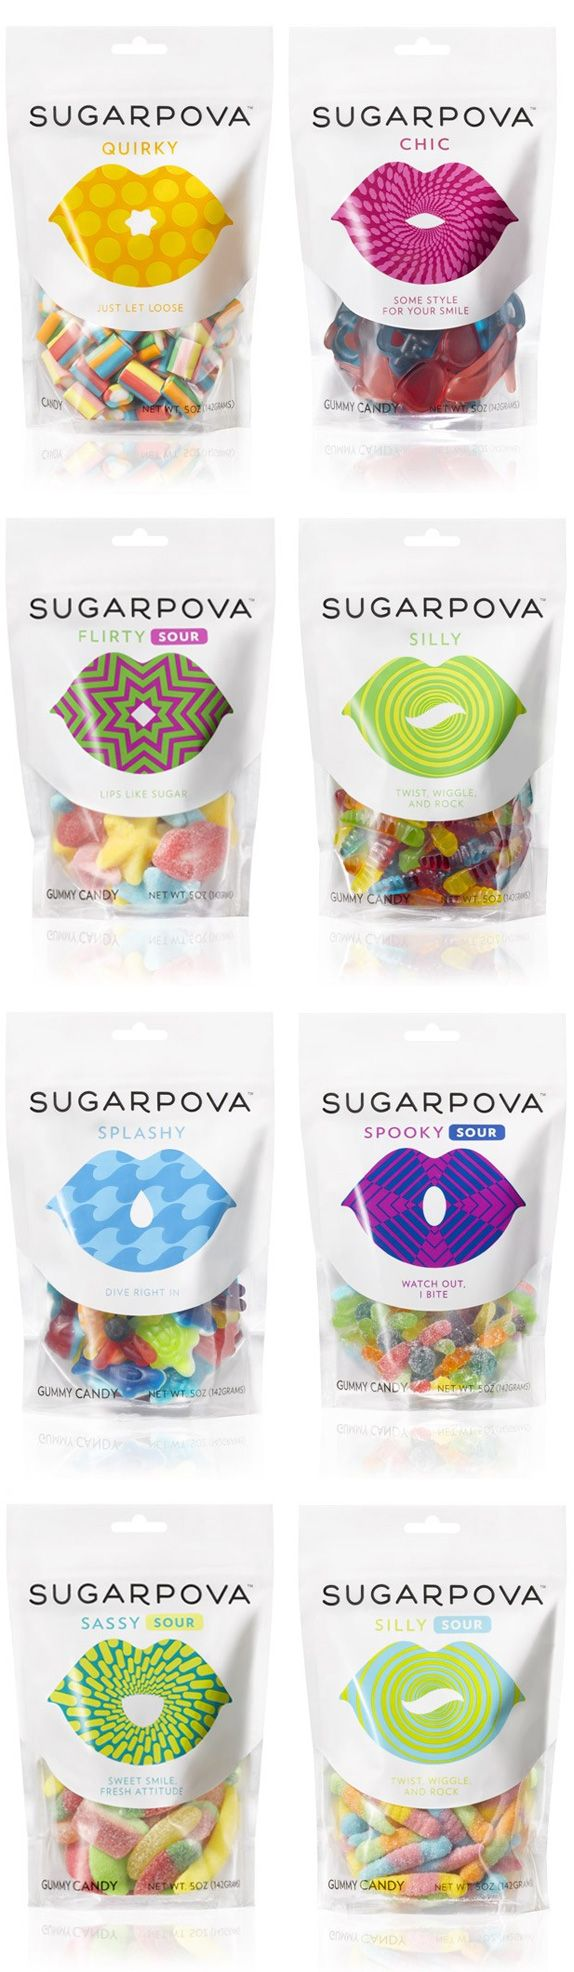 Sugarpova Logo and Packaging.